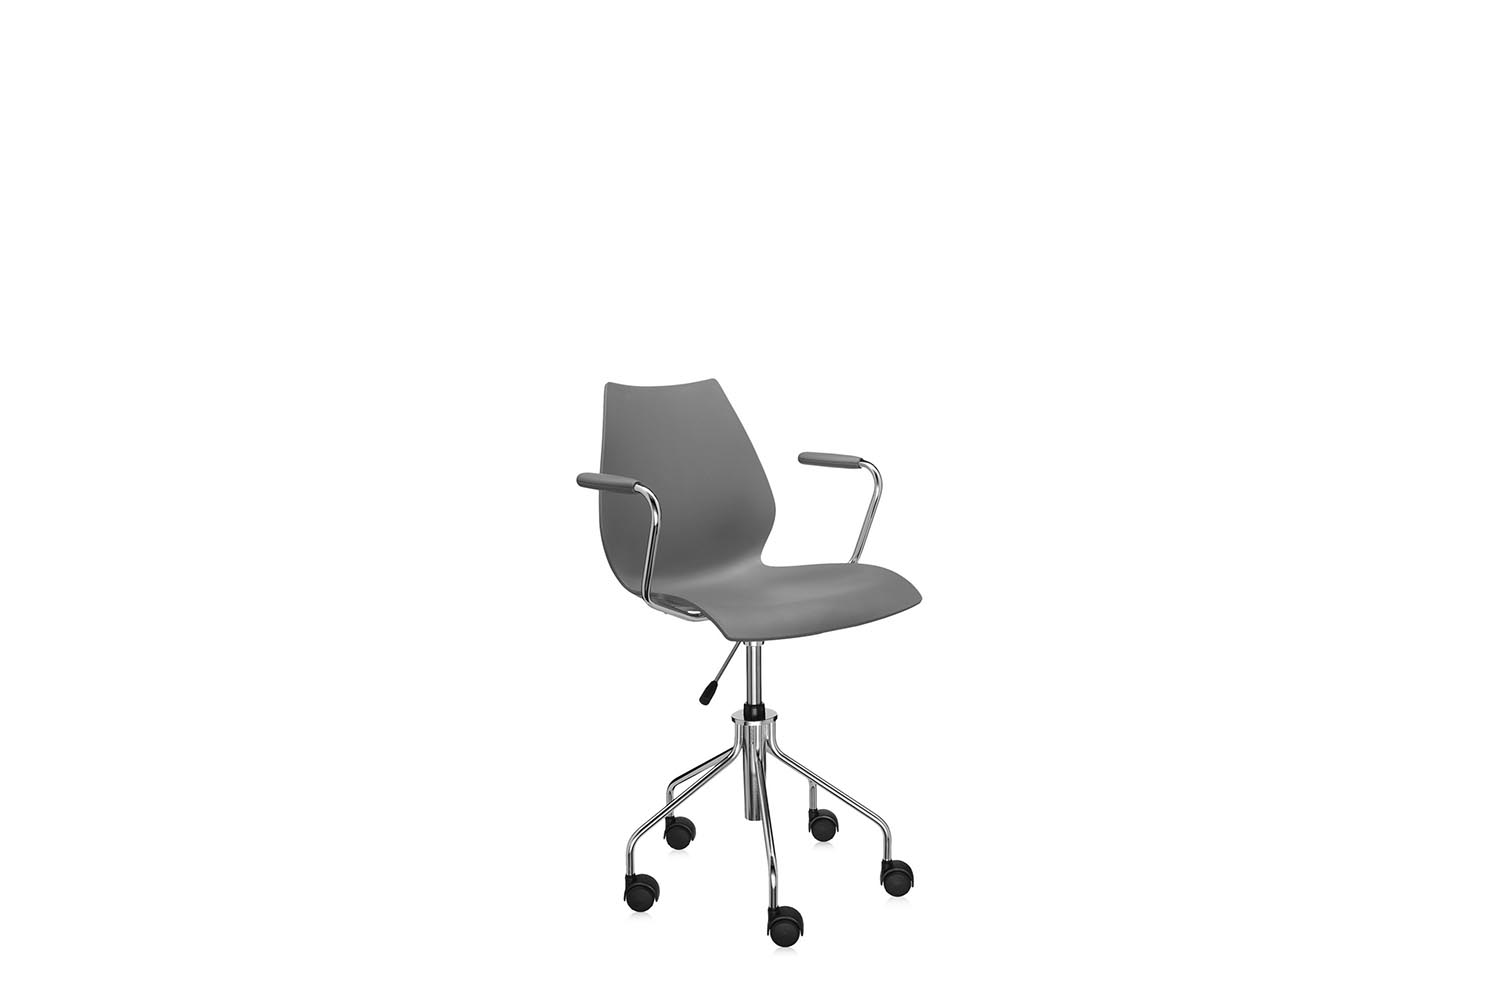 Maui Office Swivel Chair With Arms By Vico Magistretti For Kartell Space Furniture